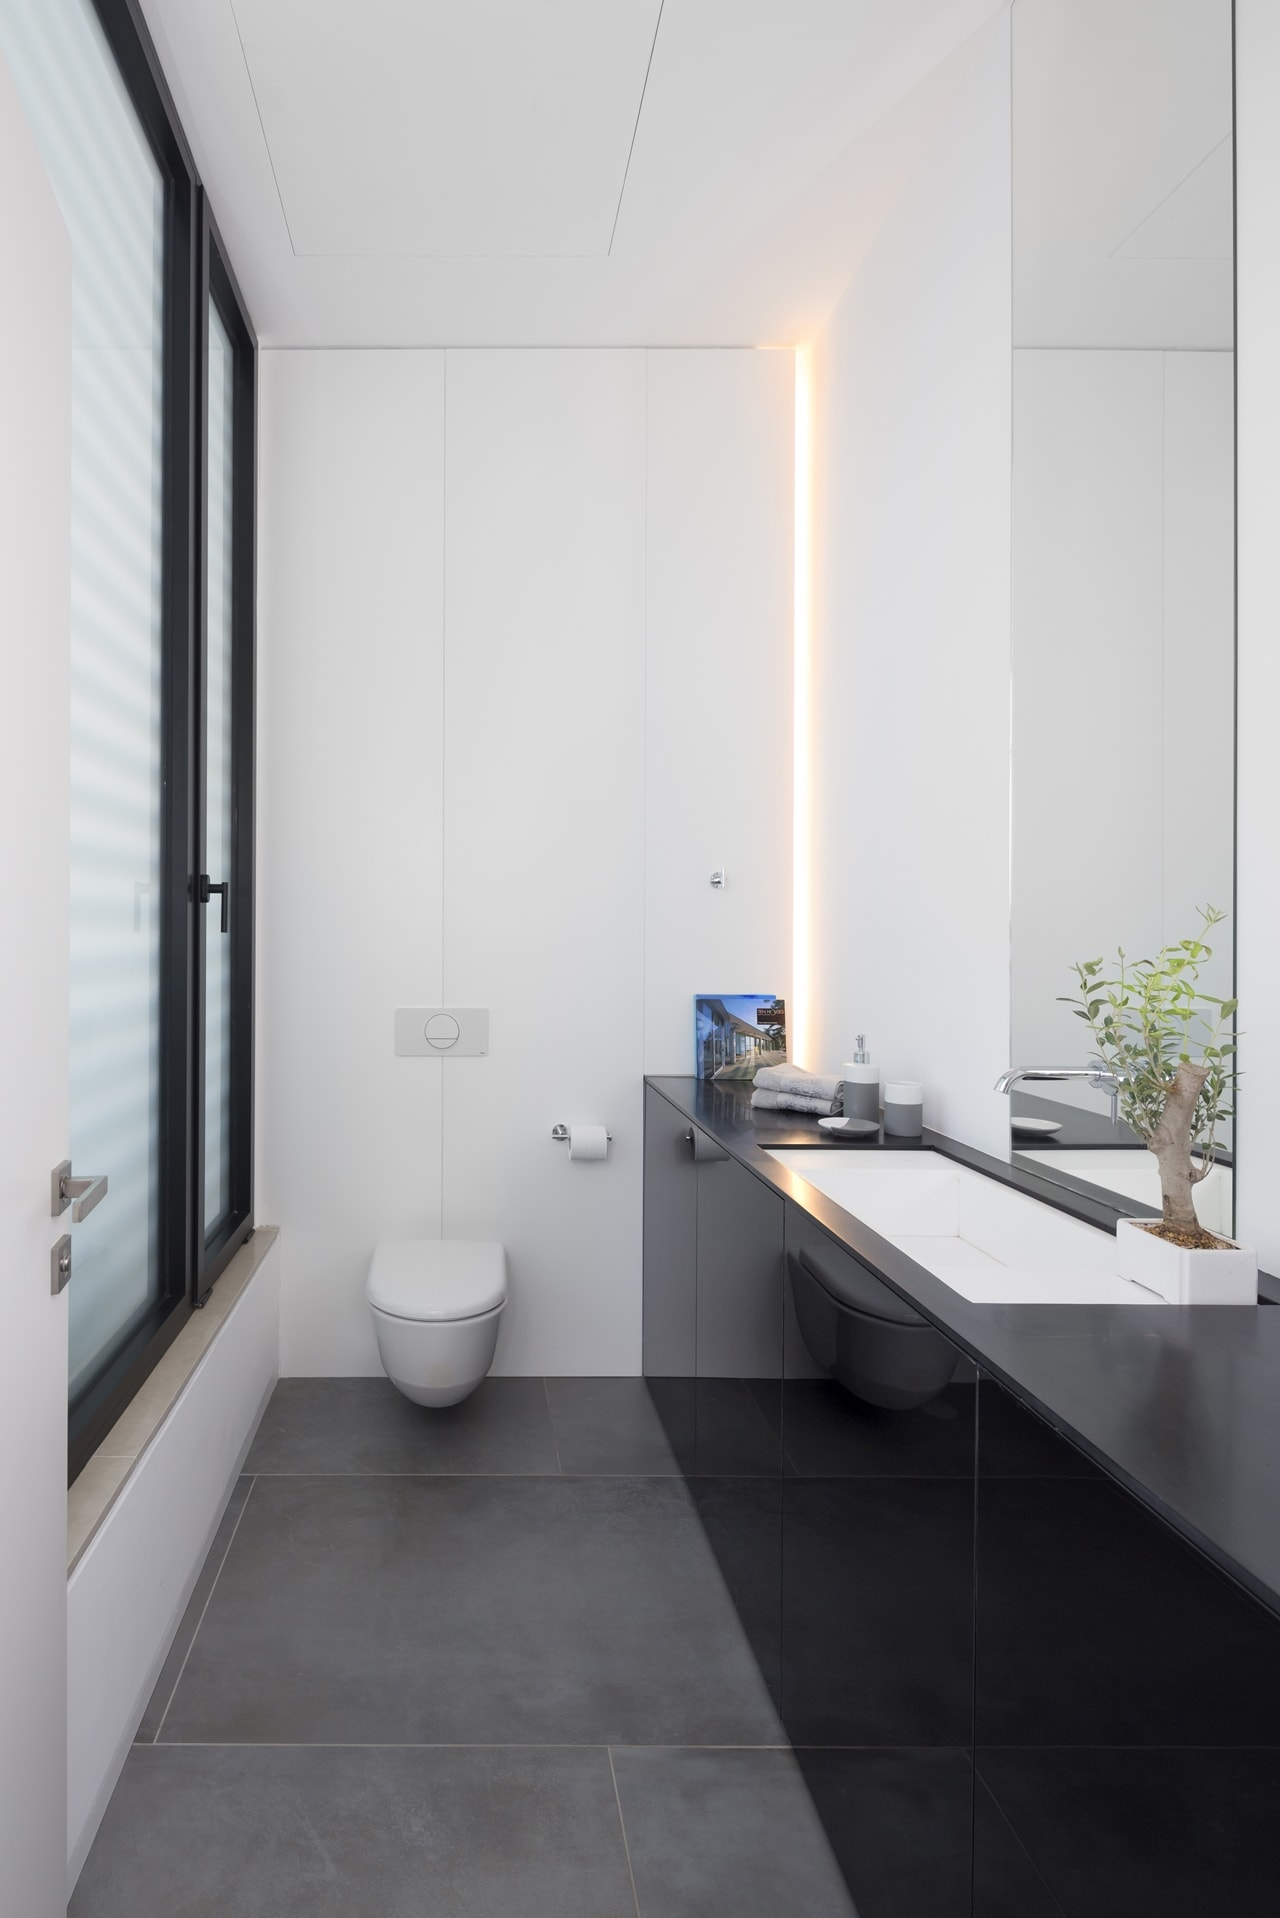 Small bathroom in simple modern home by Sachar-Rozenfeld Architects